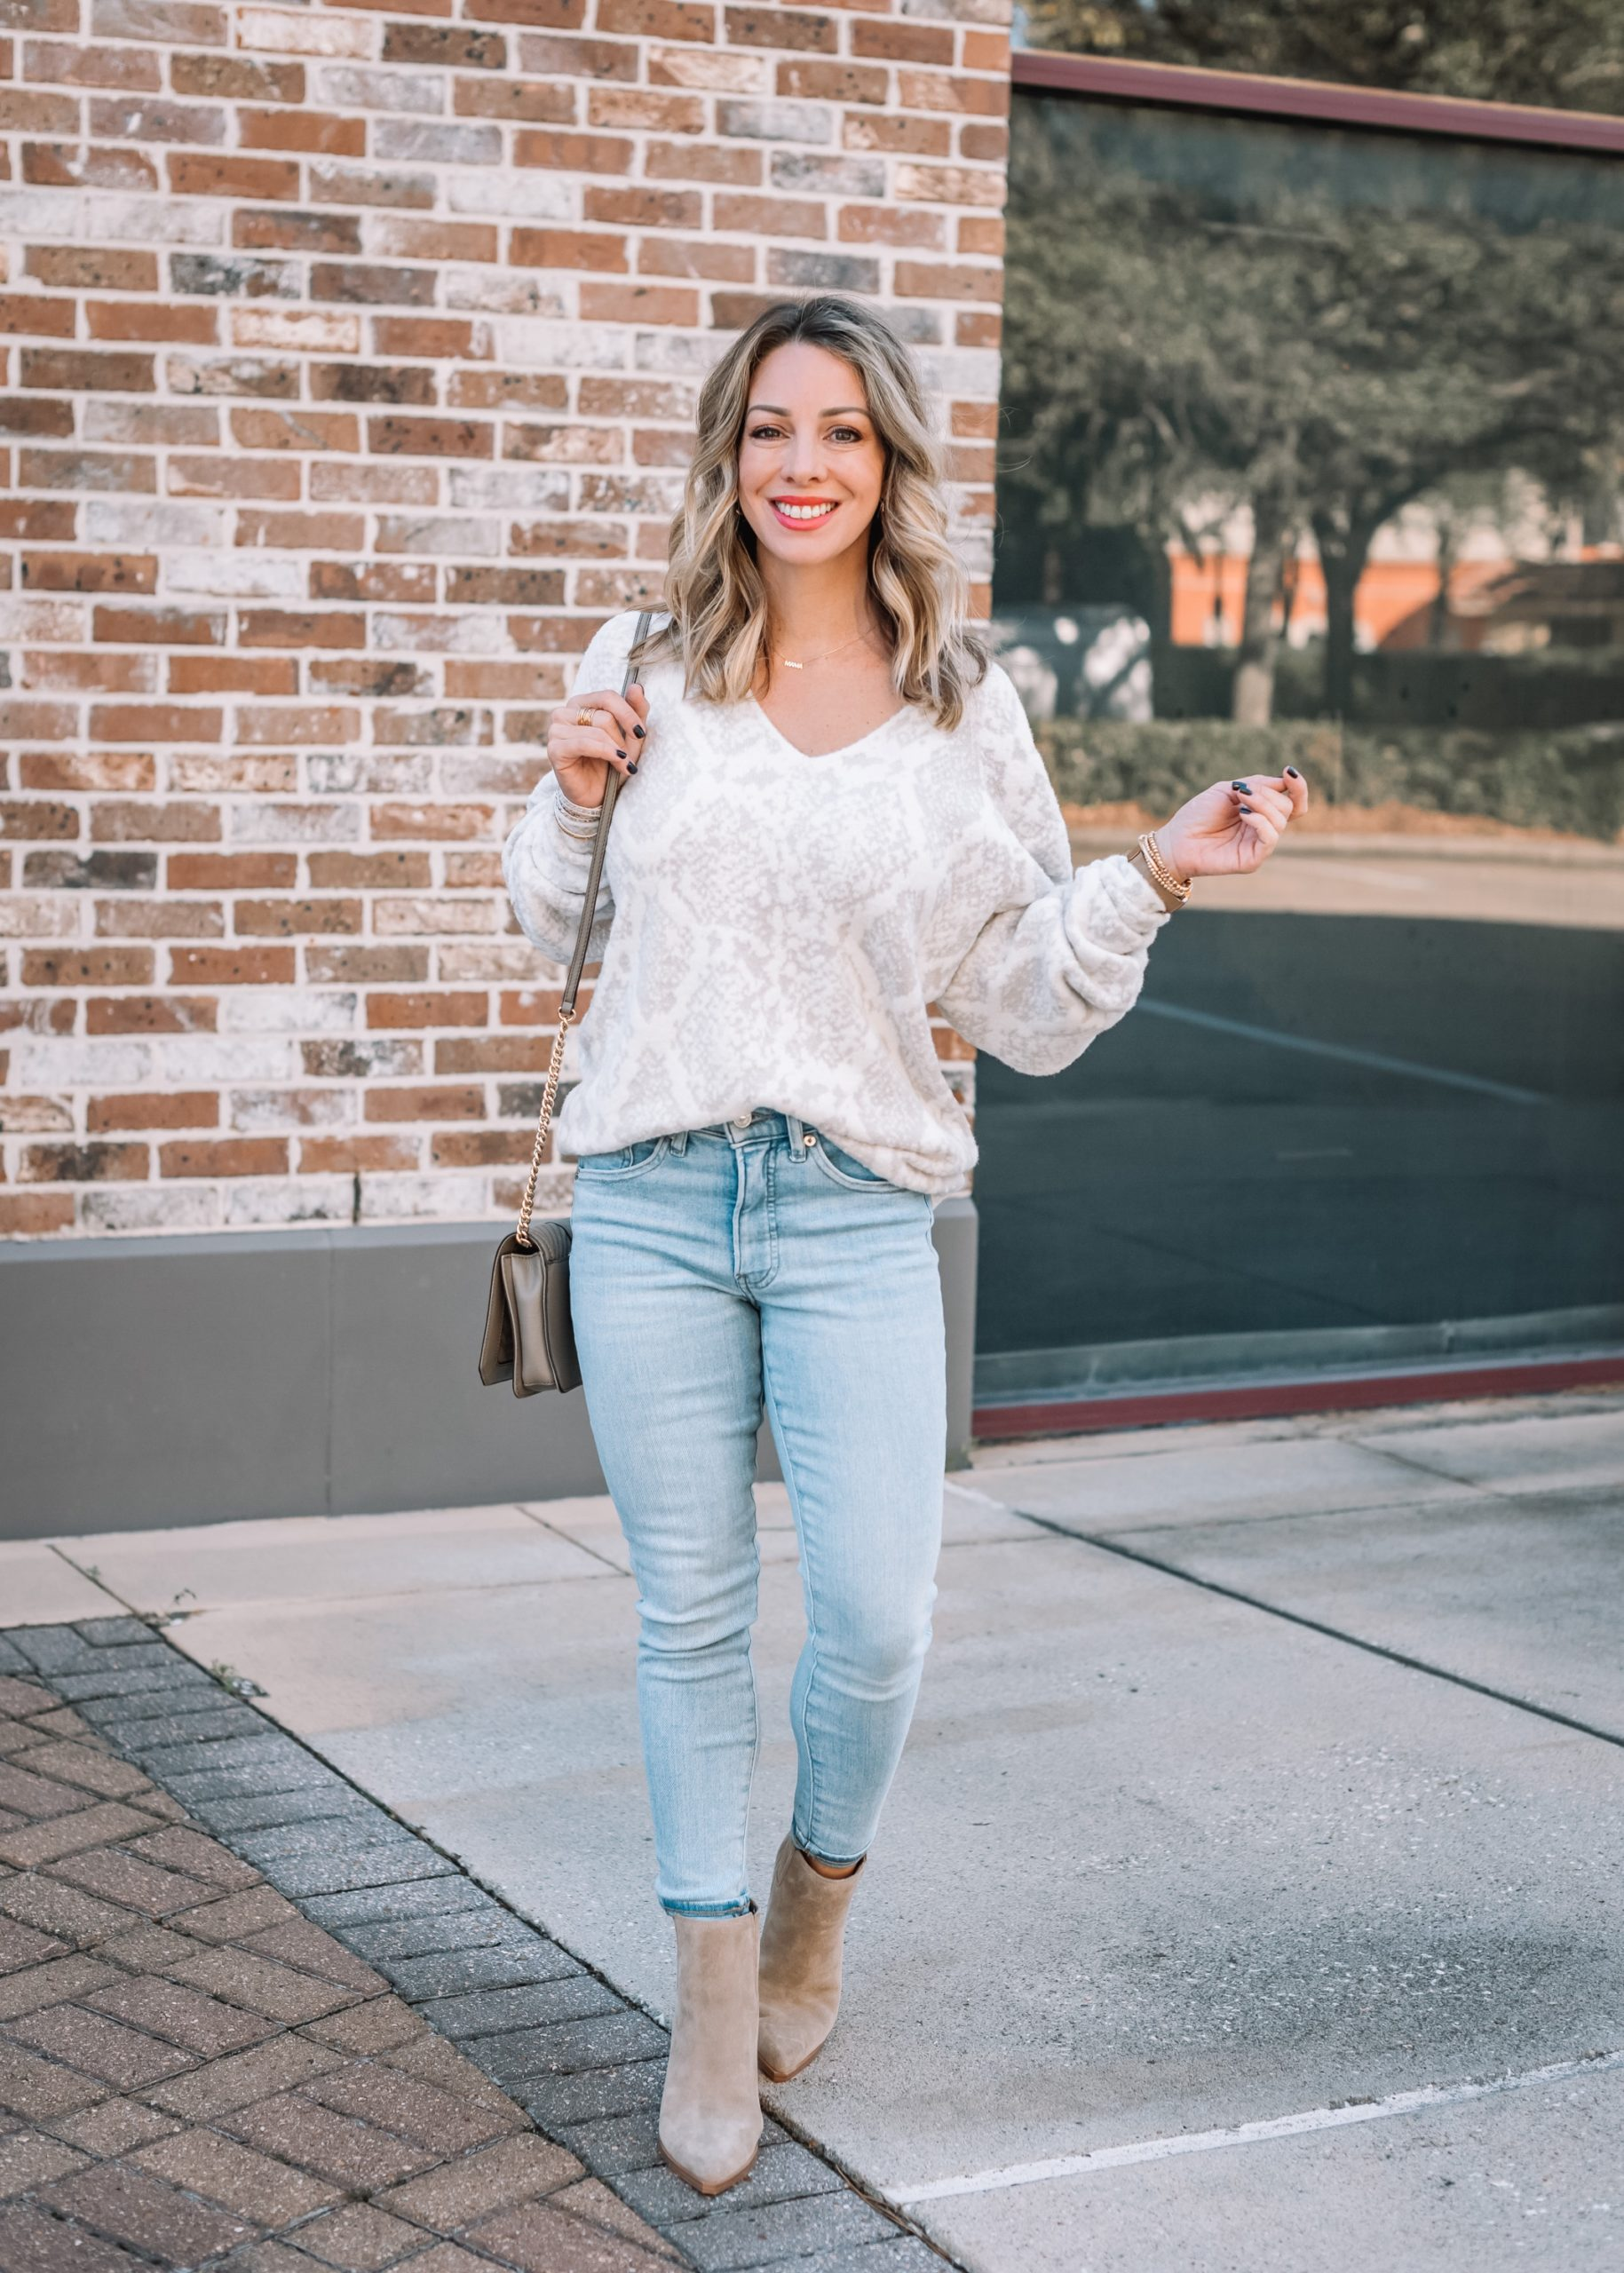 Express Fashion, Snakeskin Sweater, Jeans, Booties